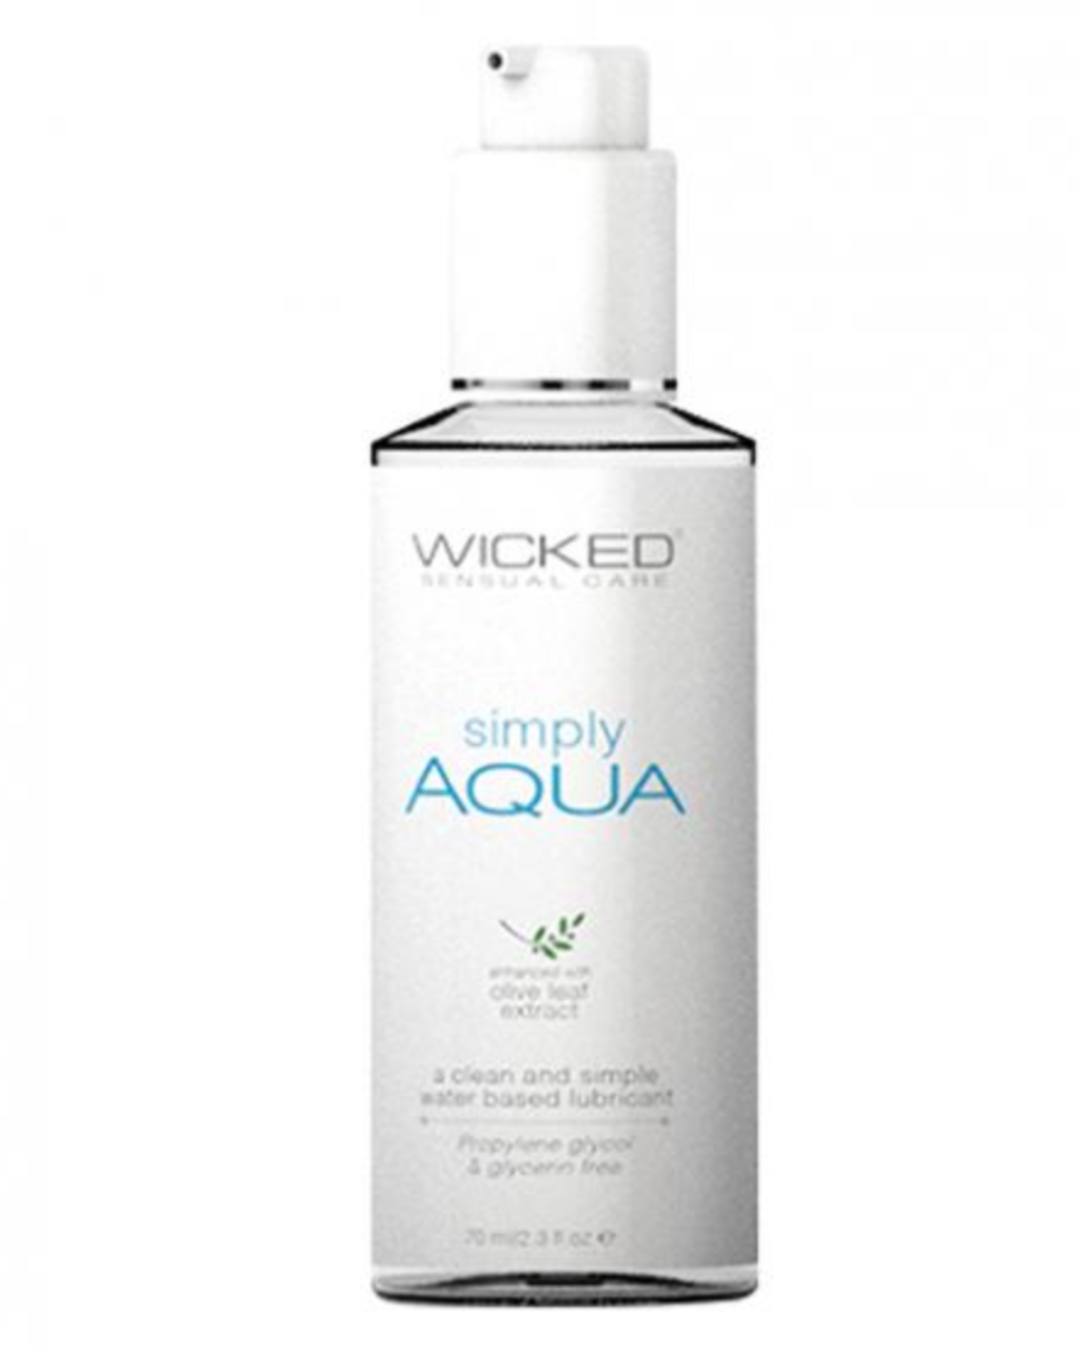 Wicked Simply Aqua Water Based Lubricant 2.3 oz